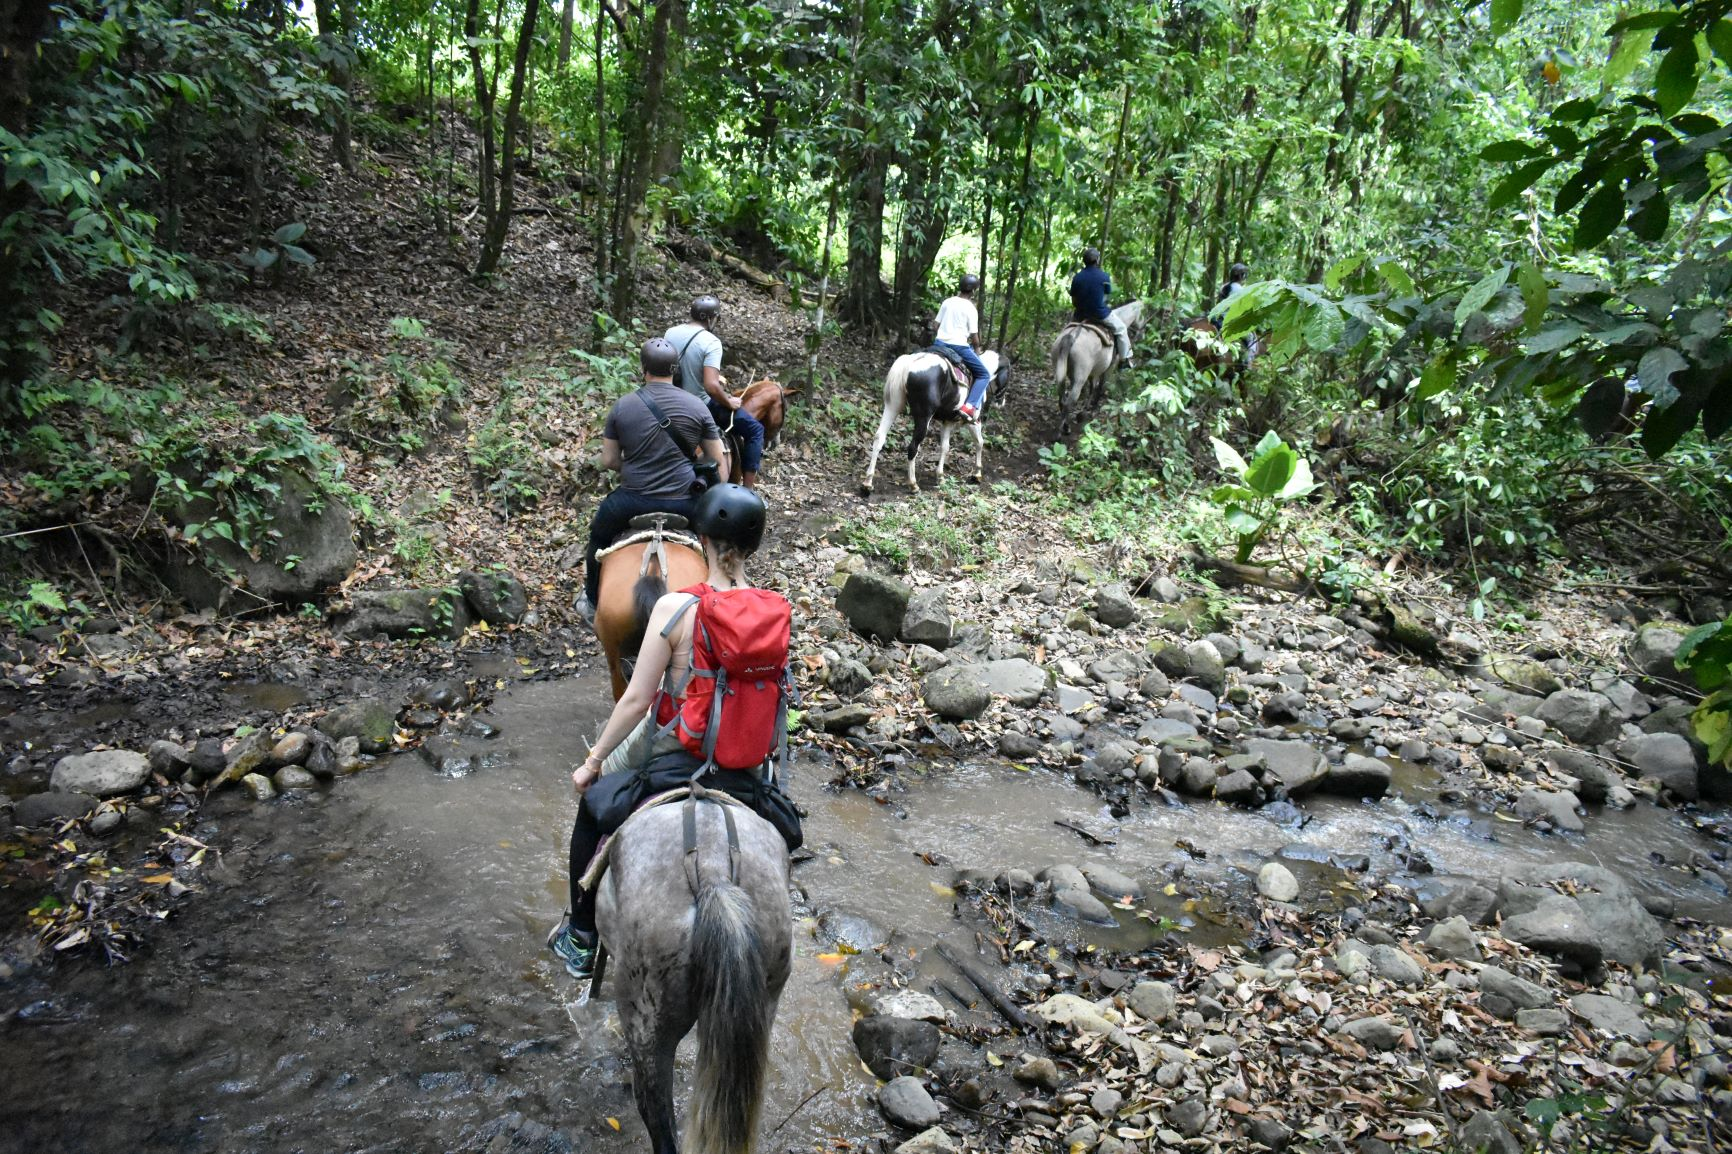 Horseback Riding In Arenal From La Fortuna & Arenal_118_4